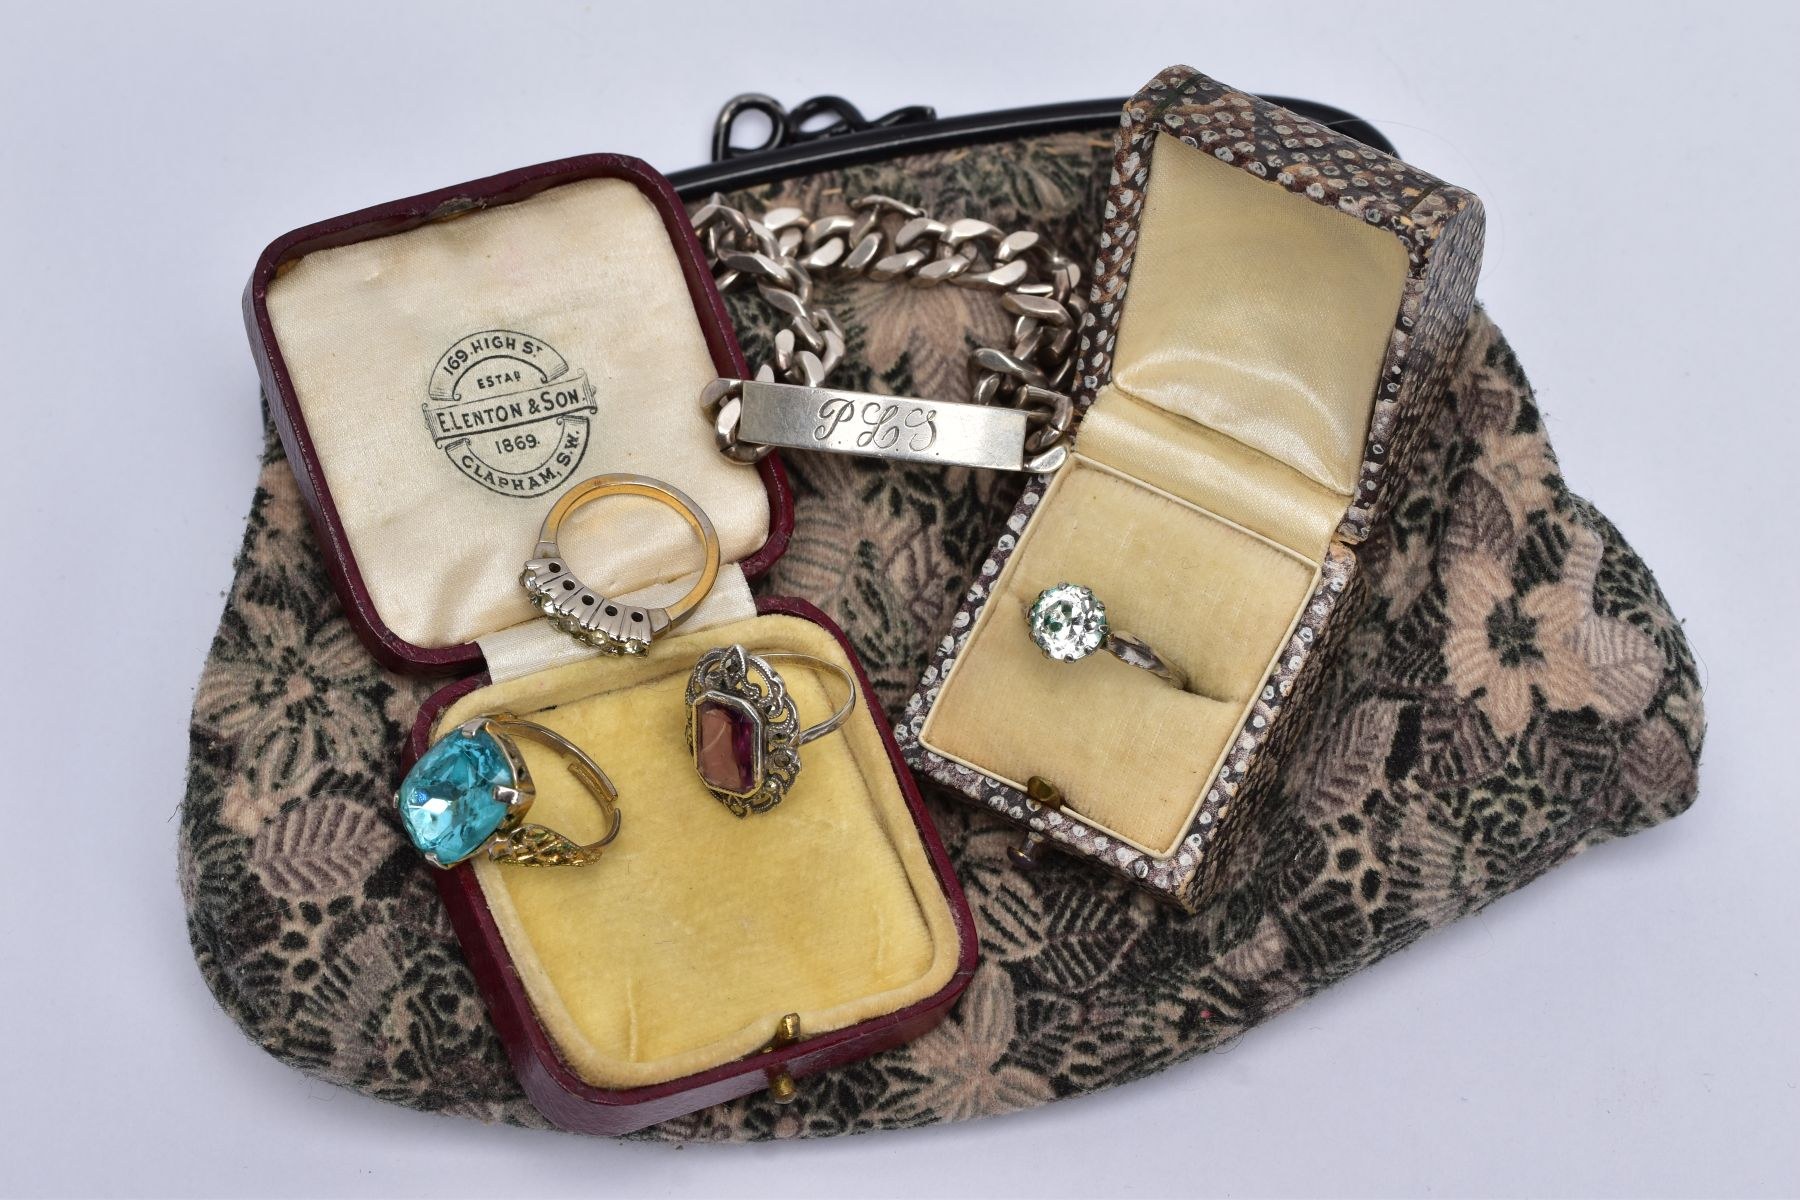 A COLLECTION OF SILVER AND COSTUME JEWELLERY ITEMS, to include a hallmarked silver identity